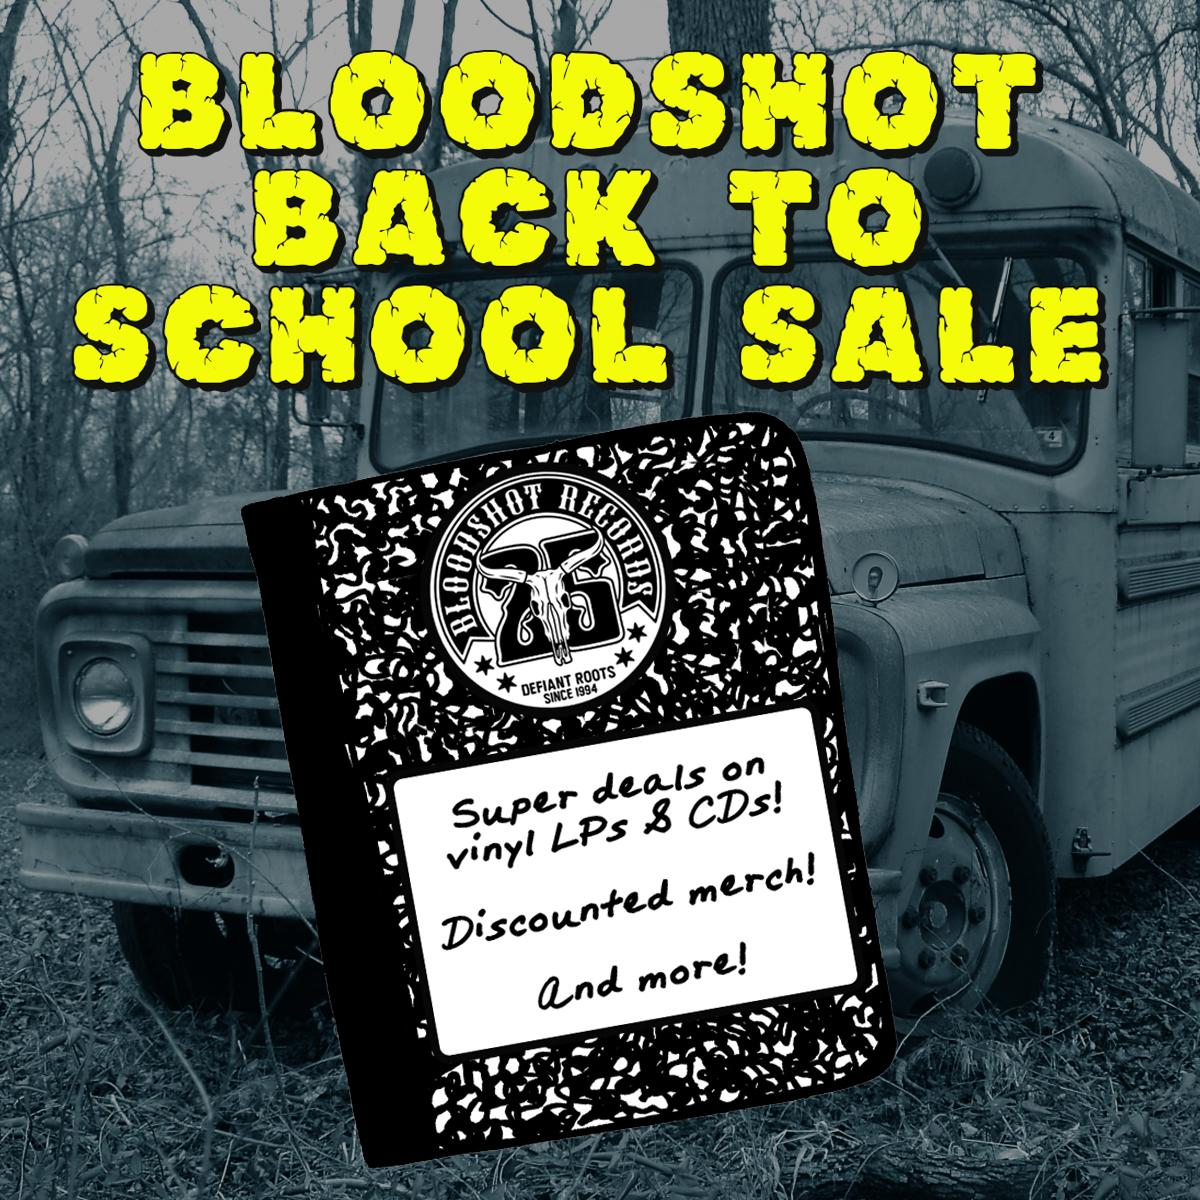 Bloodshot Records Back to School Sale